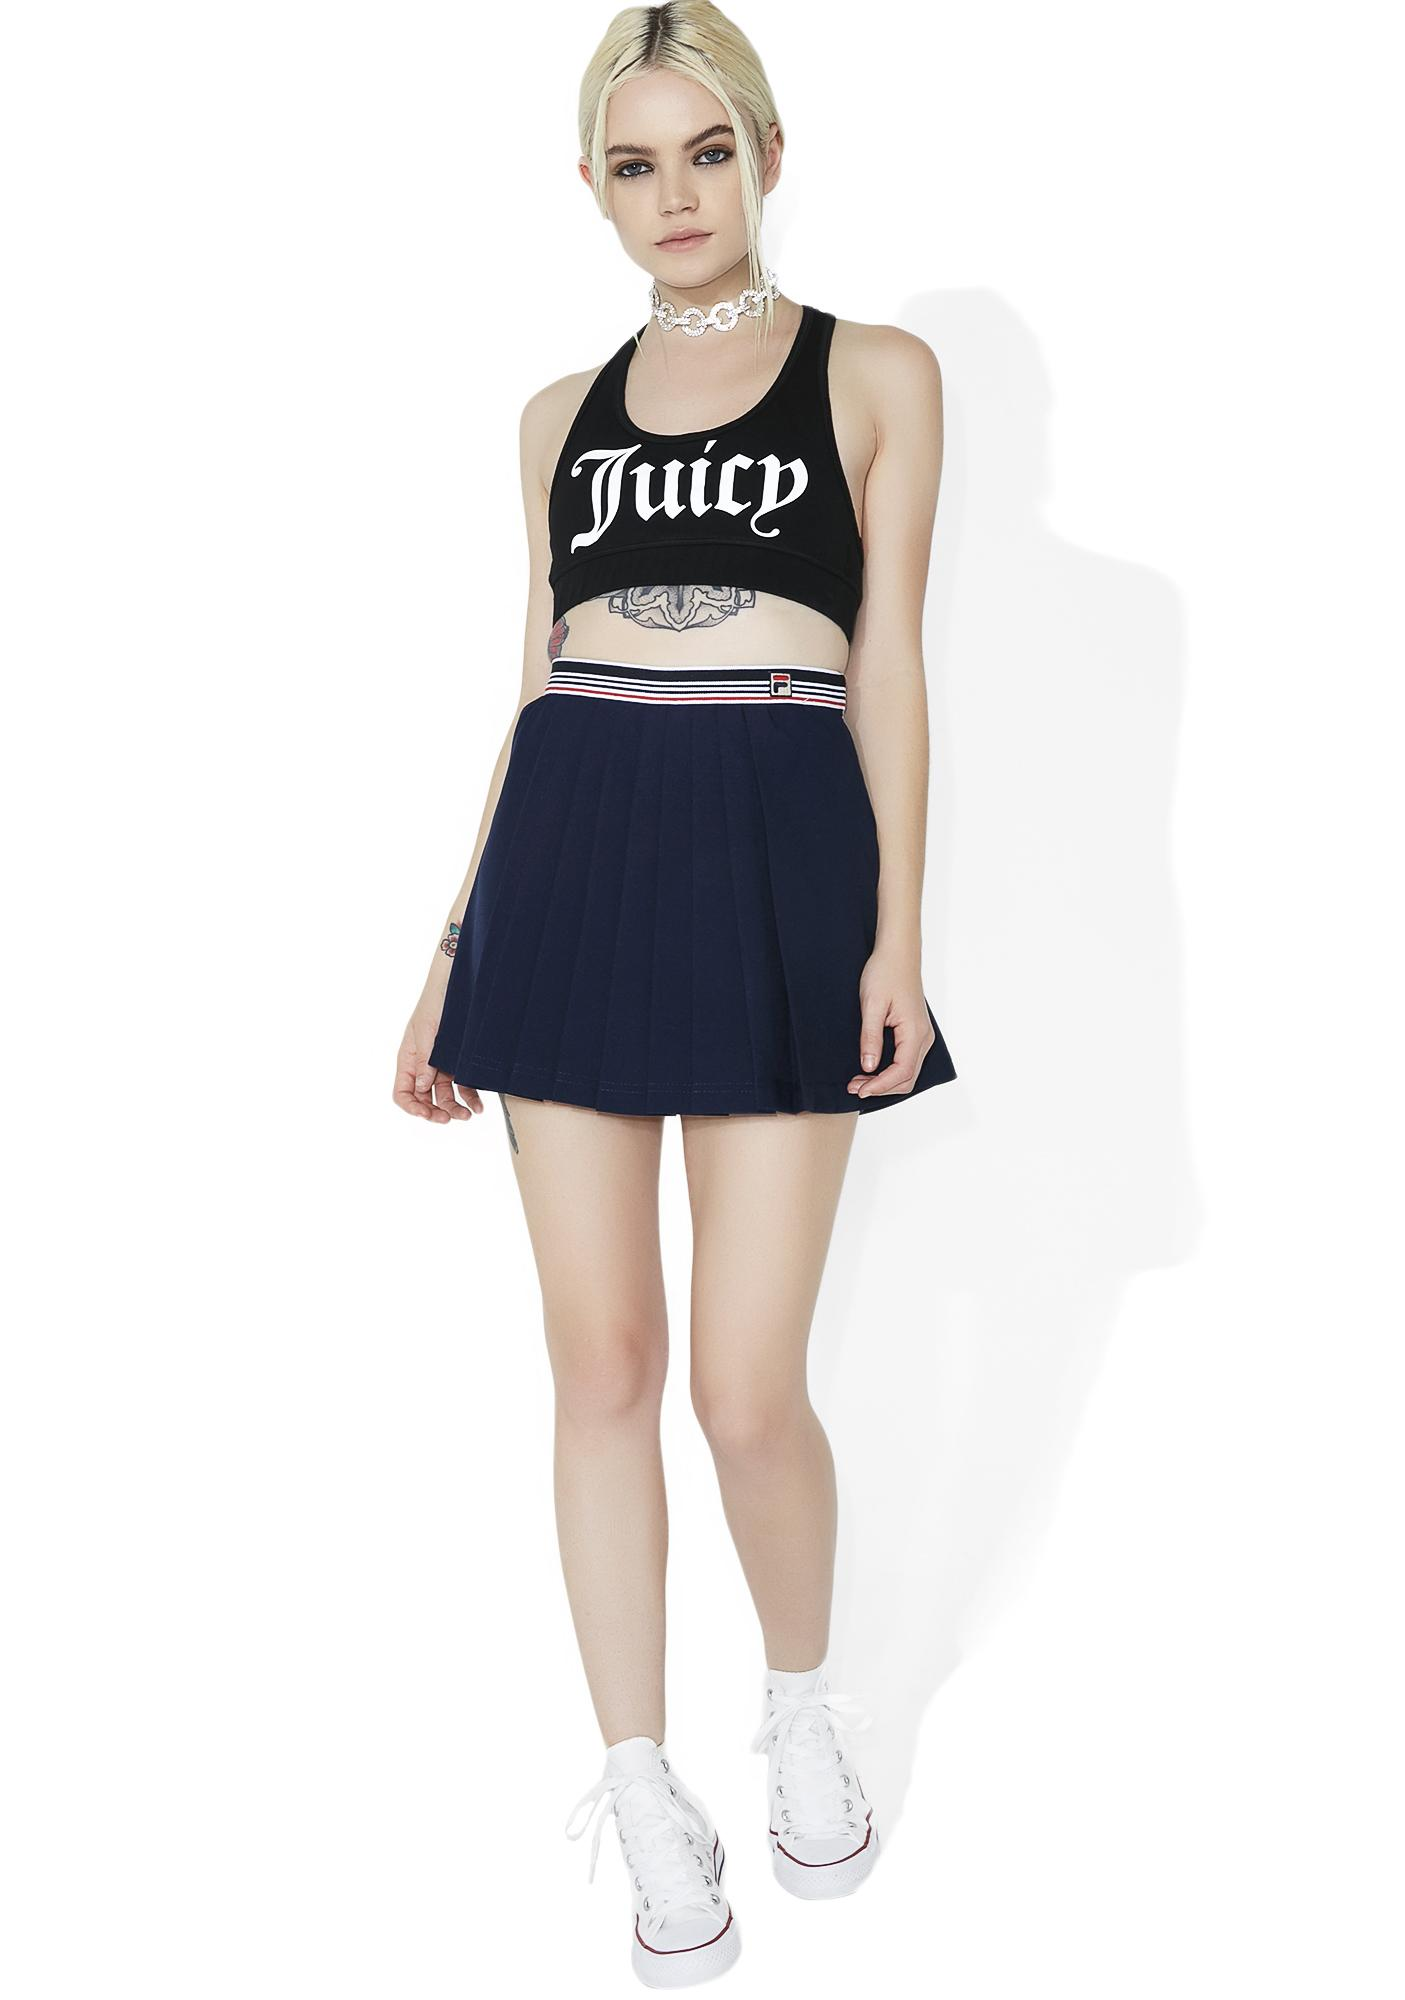 JUICY COUTURE Graphic Racerback Sport Top